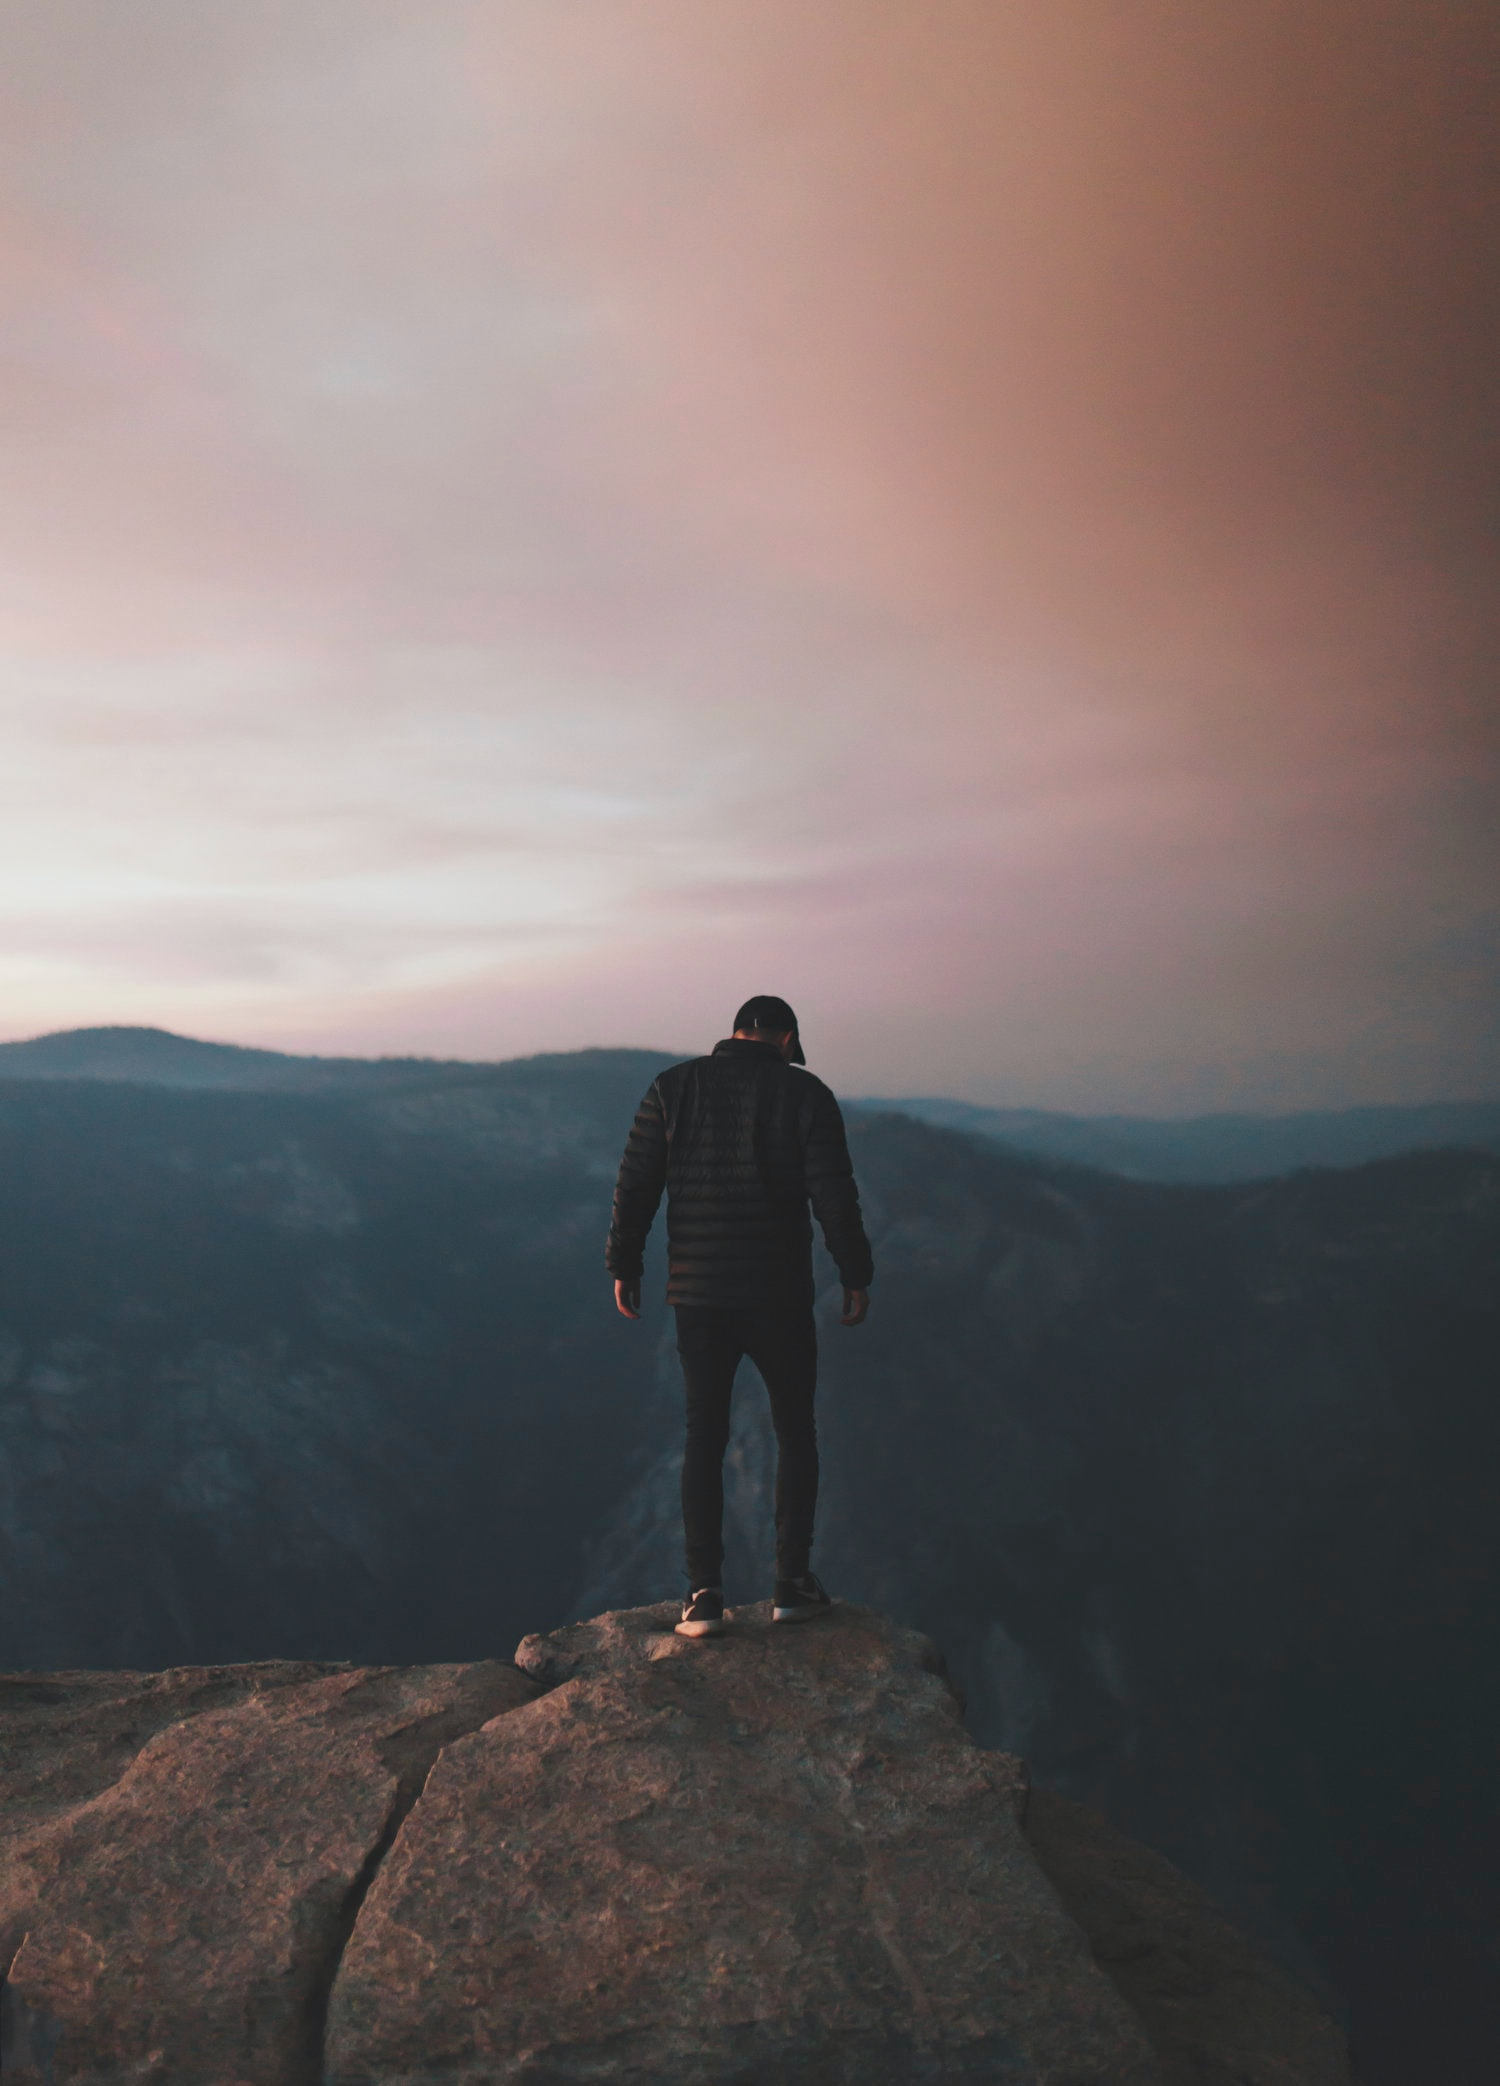 Tips for overcoming fear